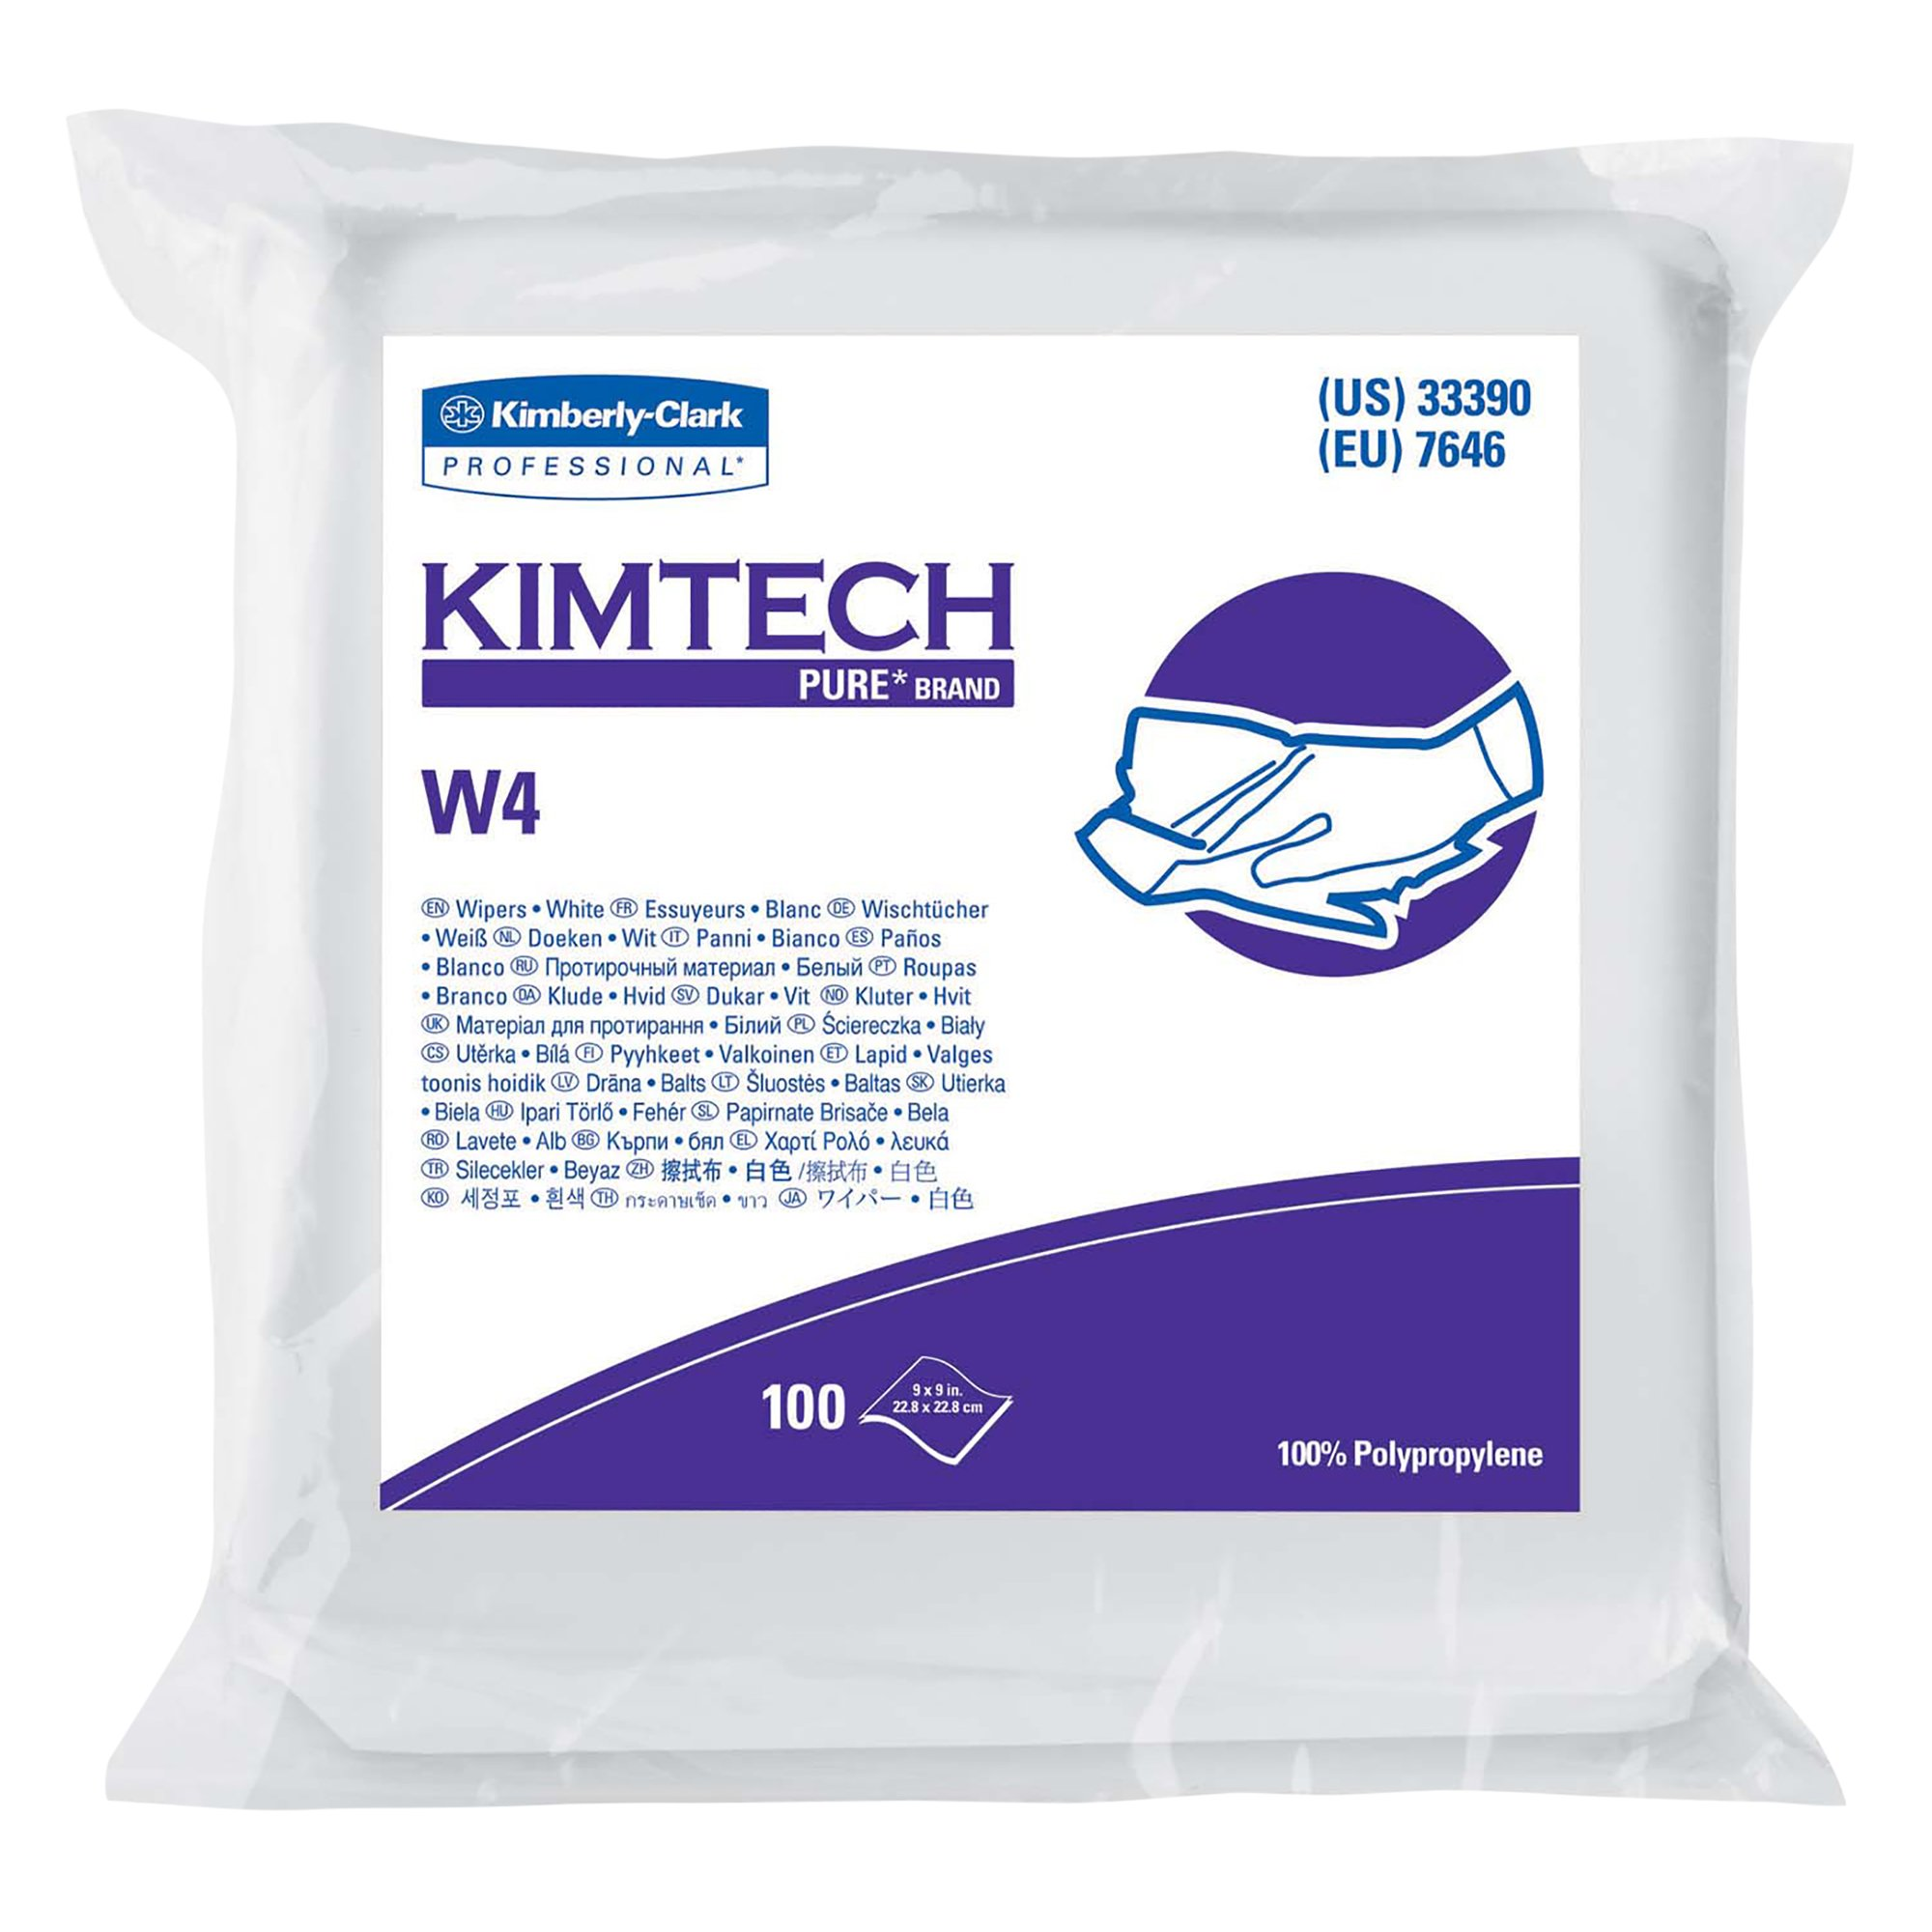 "Kimtech Pure W4 Dry Wipers (33390), with Anti-Stat Resealable Double-Bag Pouch, 9"" x 9"", White, 500 Wipes/Case, 5 Packs of 100 Wipes"